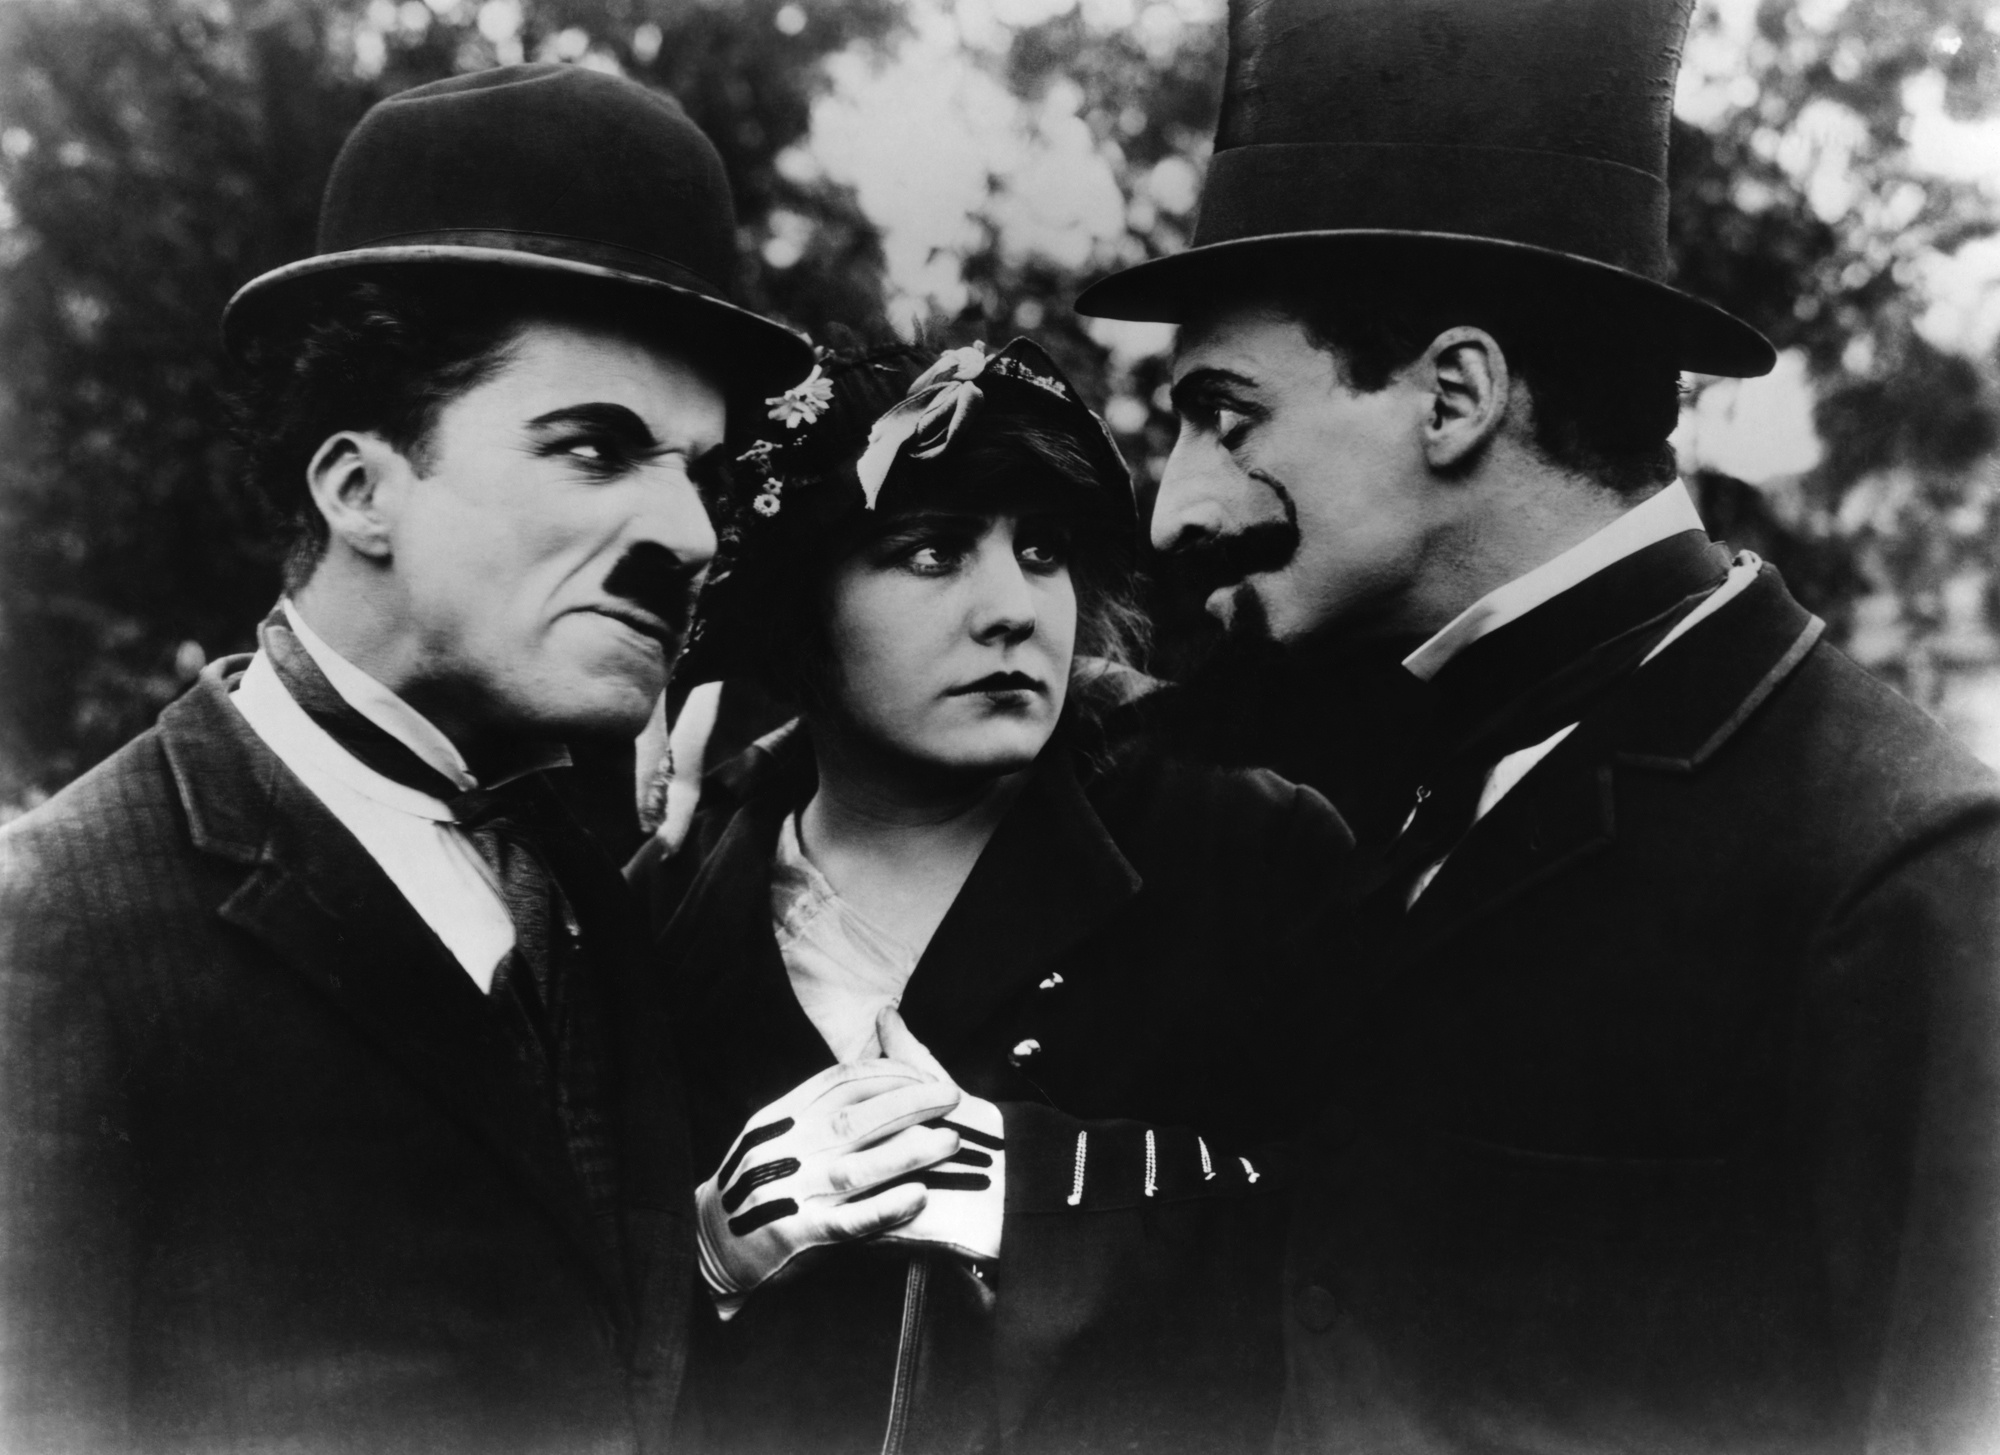 Charlie Chaplin with Edna Purviance and Leo White